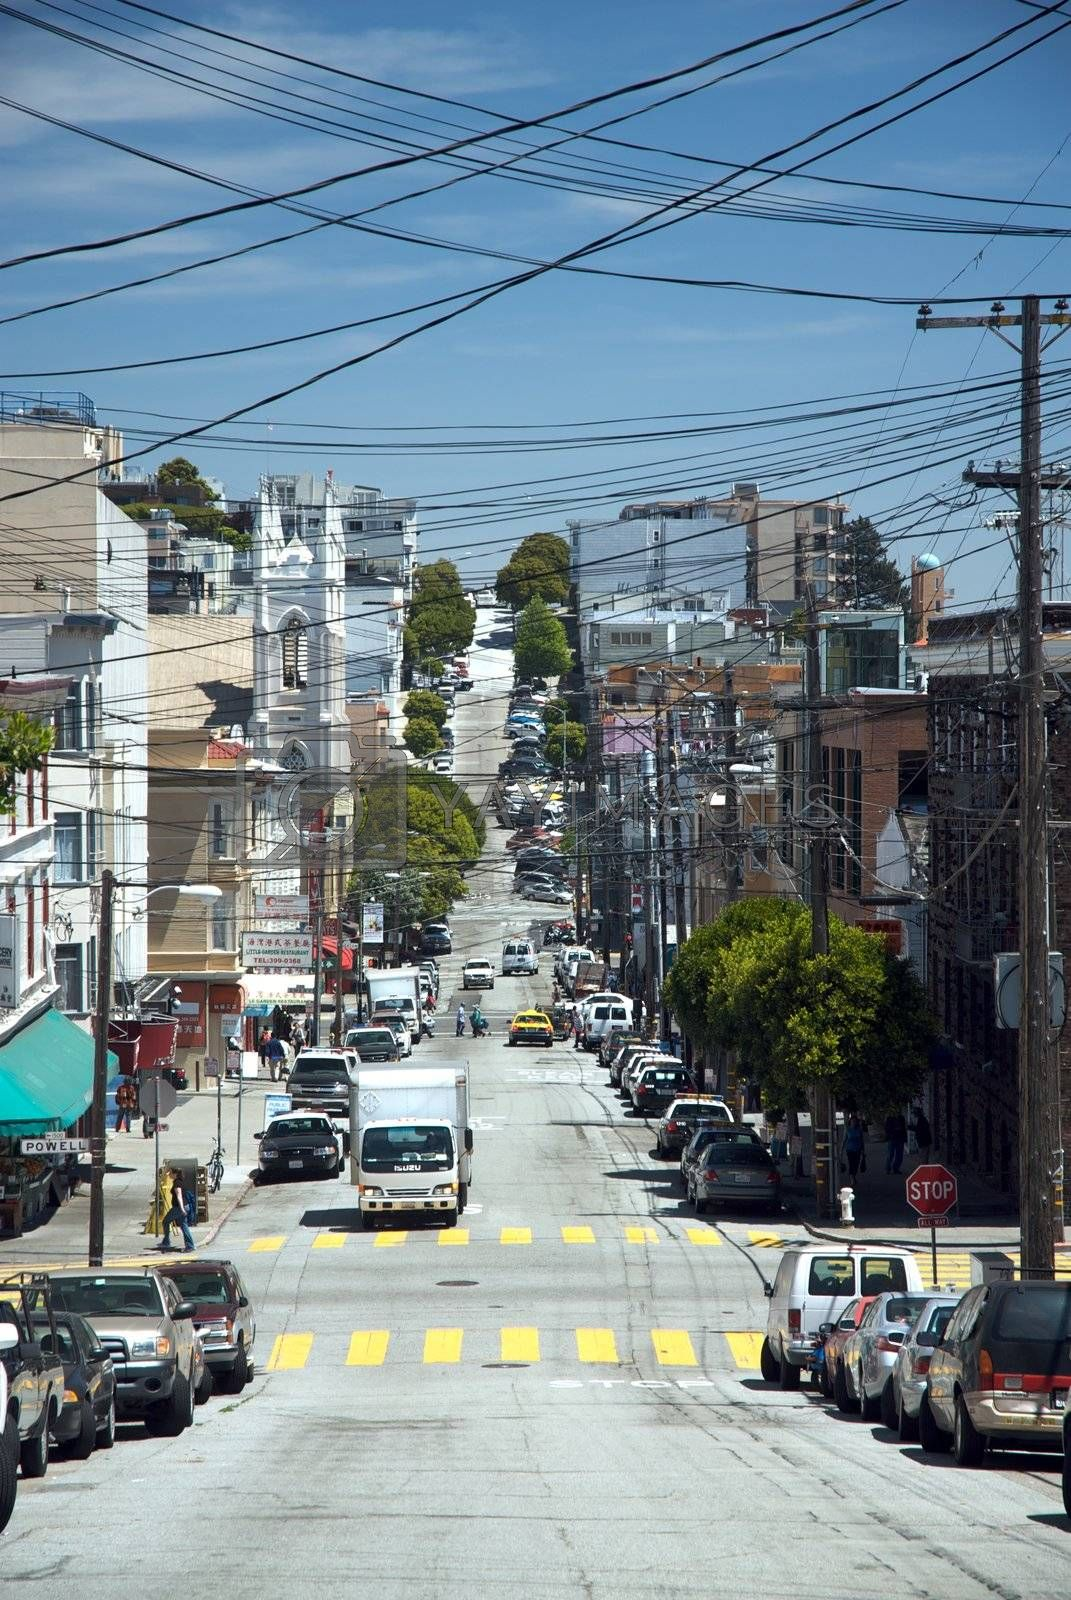 Streets of San Francisco by jedphoto